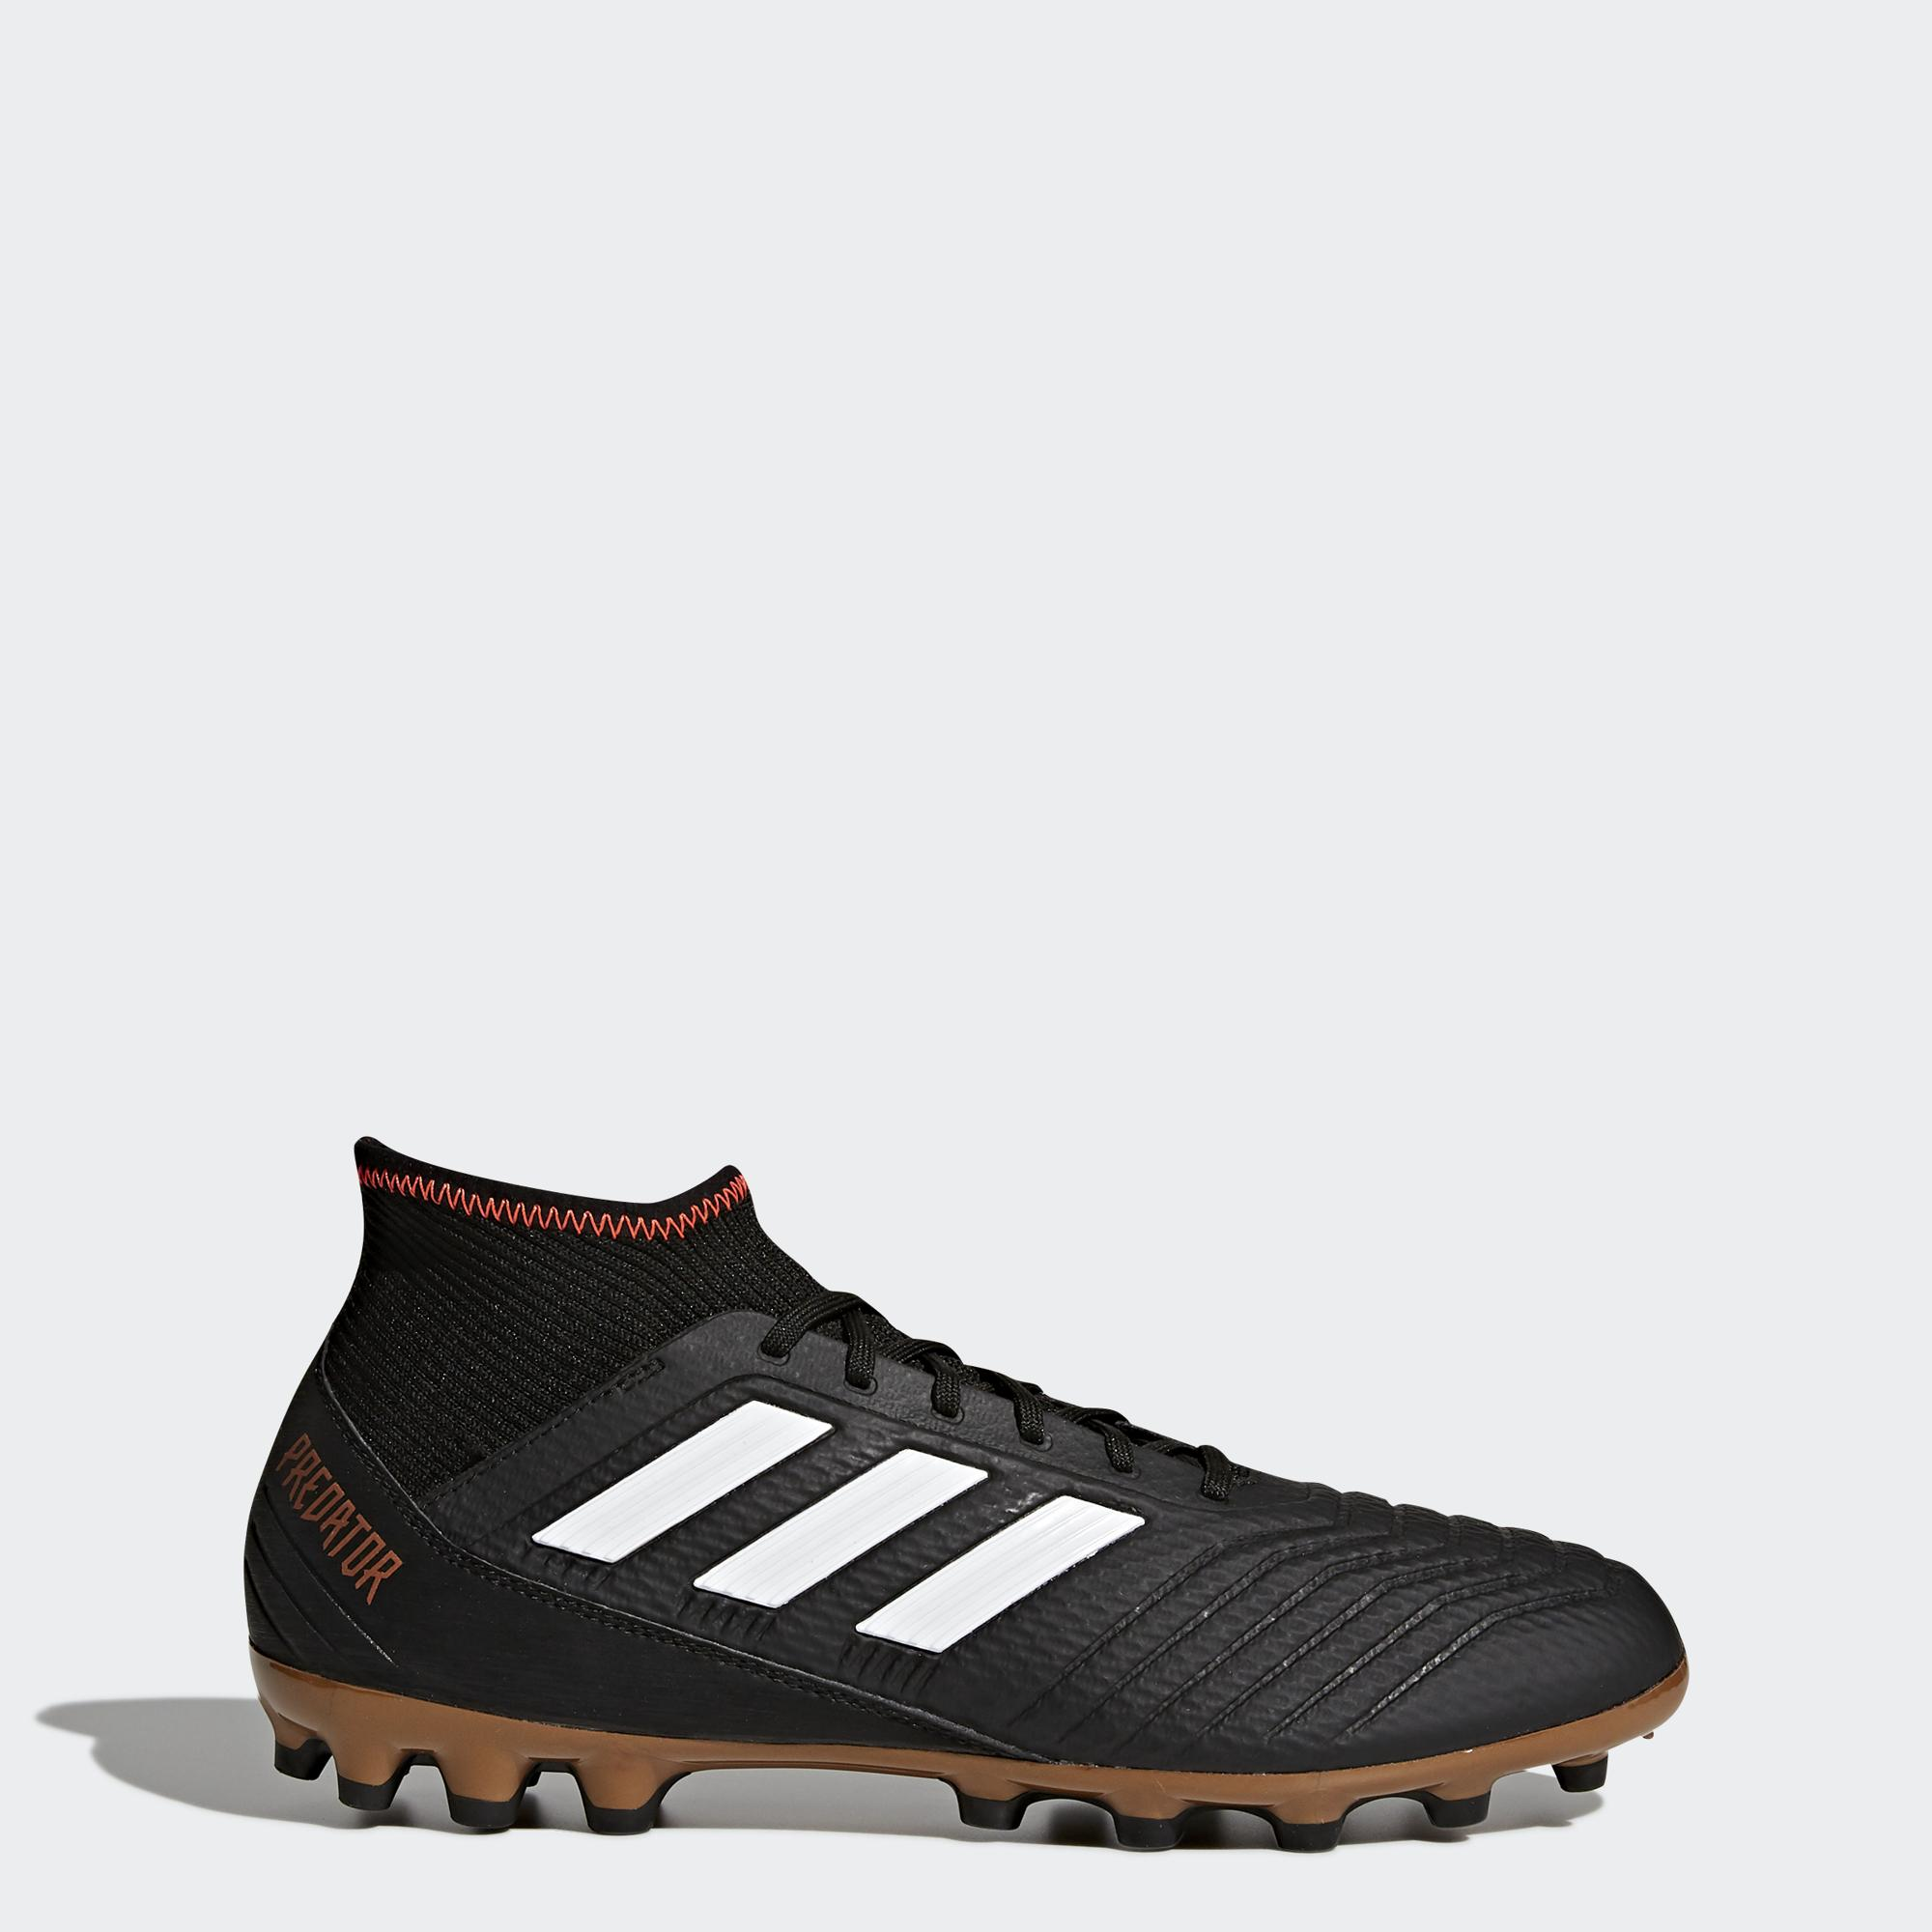 Adidas Football Shoes Predator 18.3 Ag Black - Tifoshop.com 70355faa42